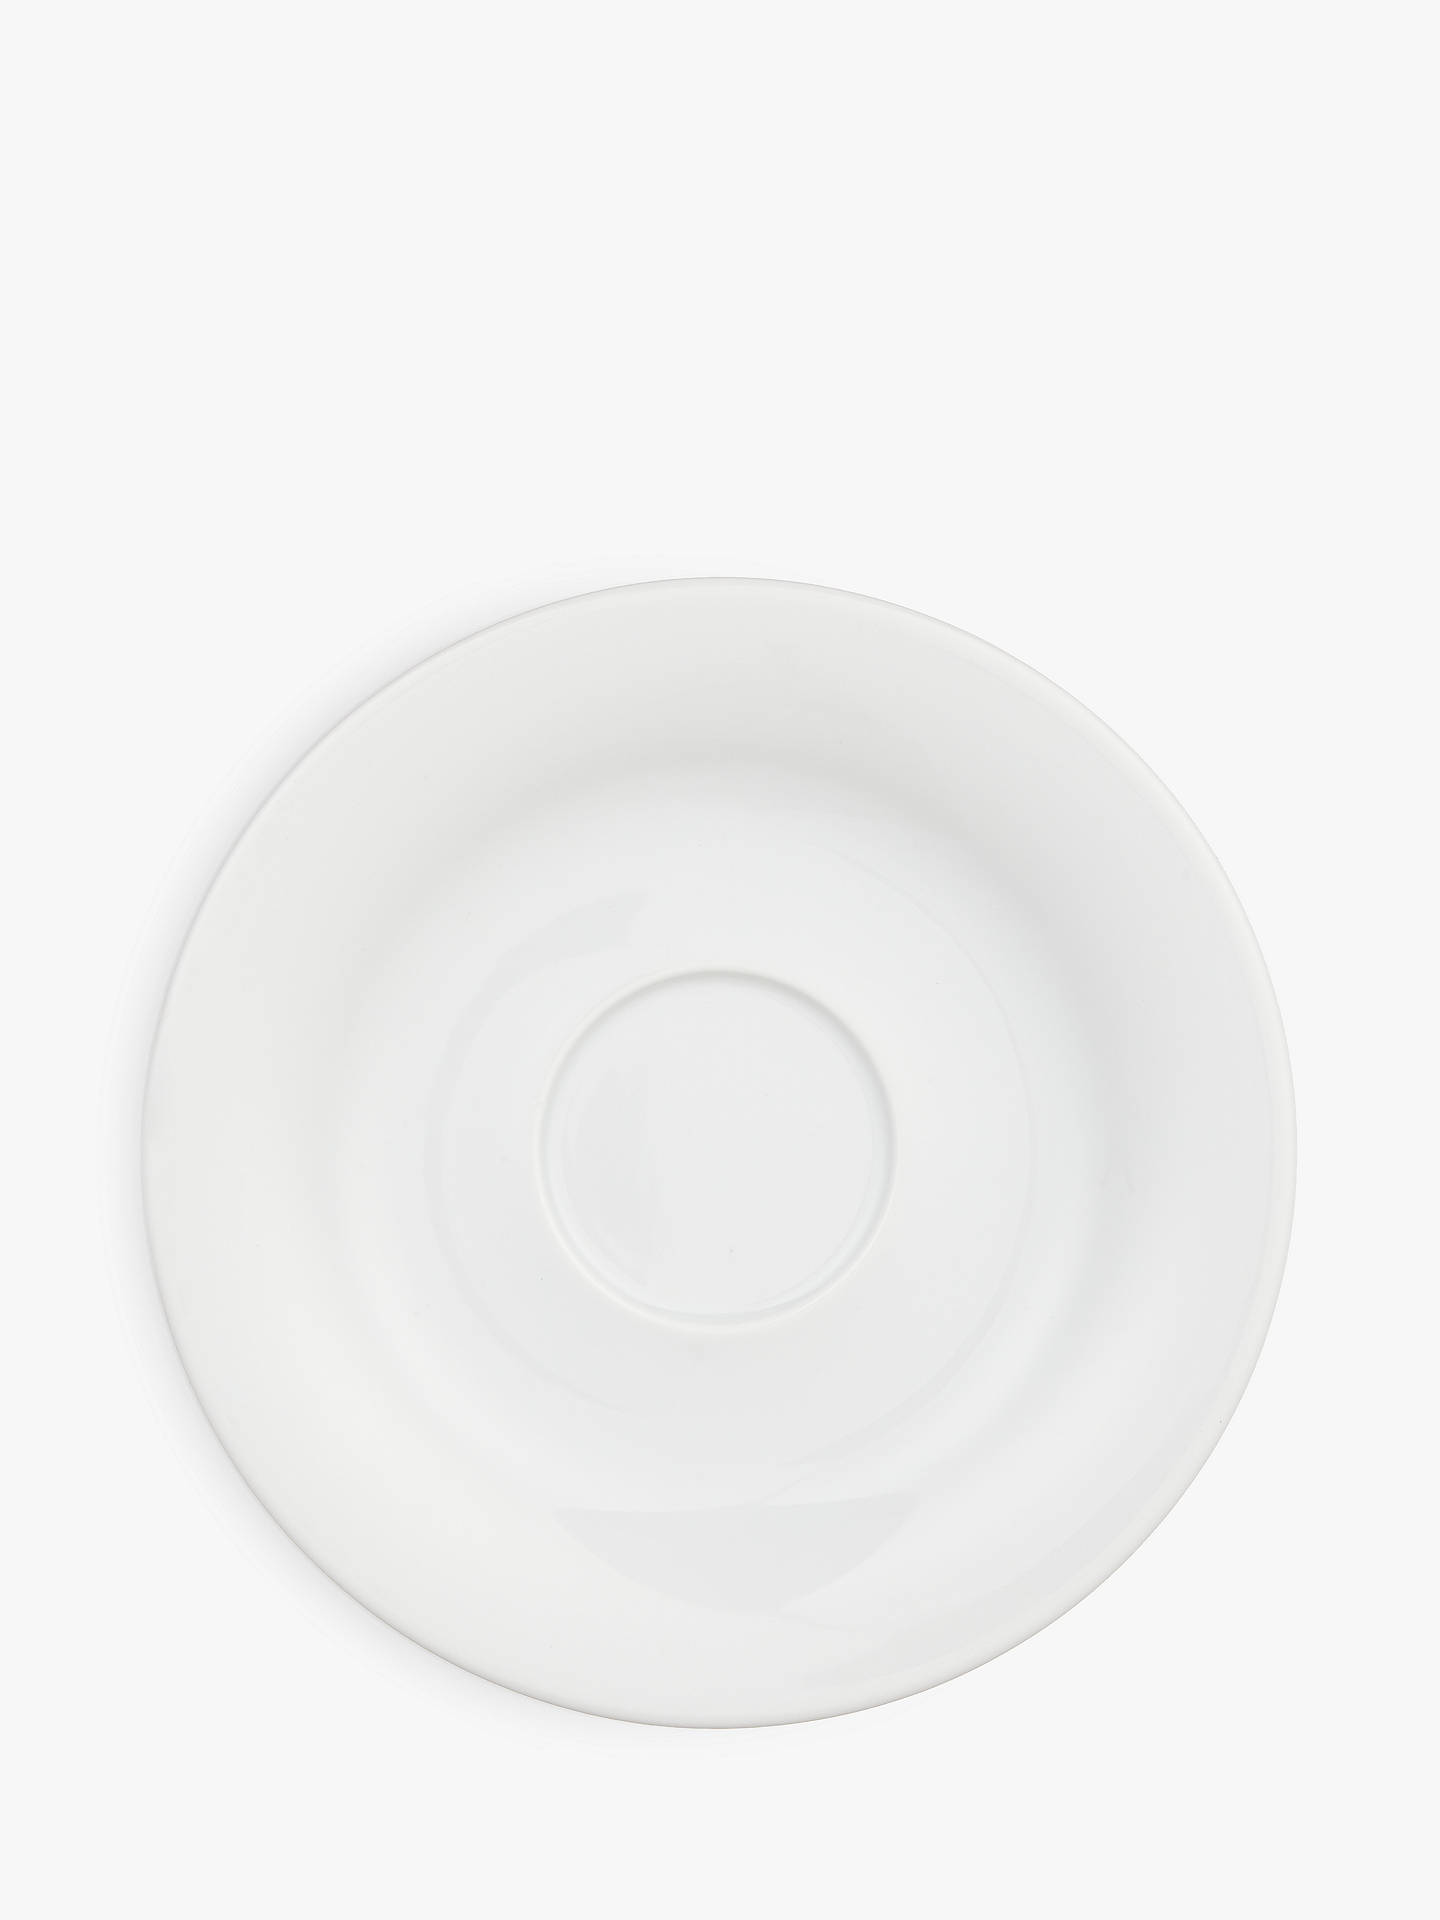 BuyHouse by John Lewis Eat 17cm Saucer, White Online at johnlewis.com